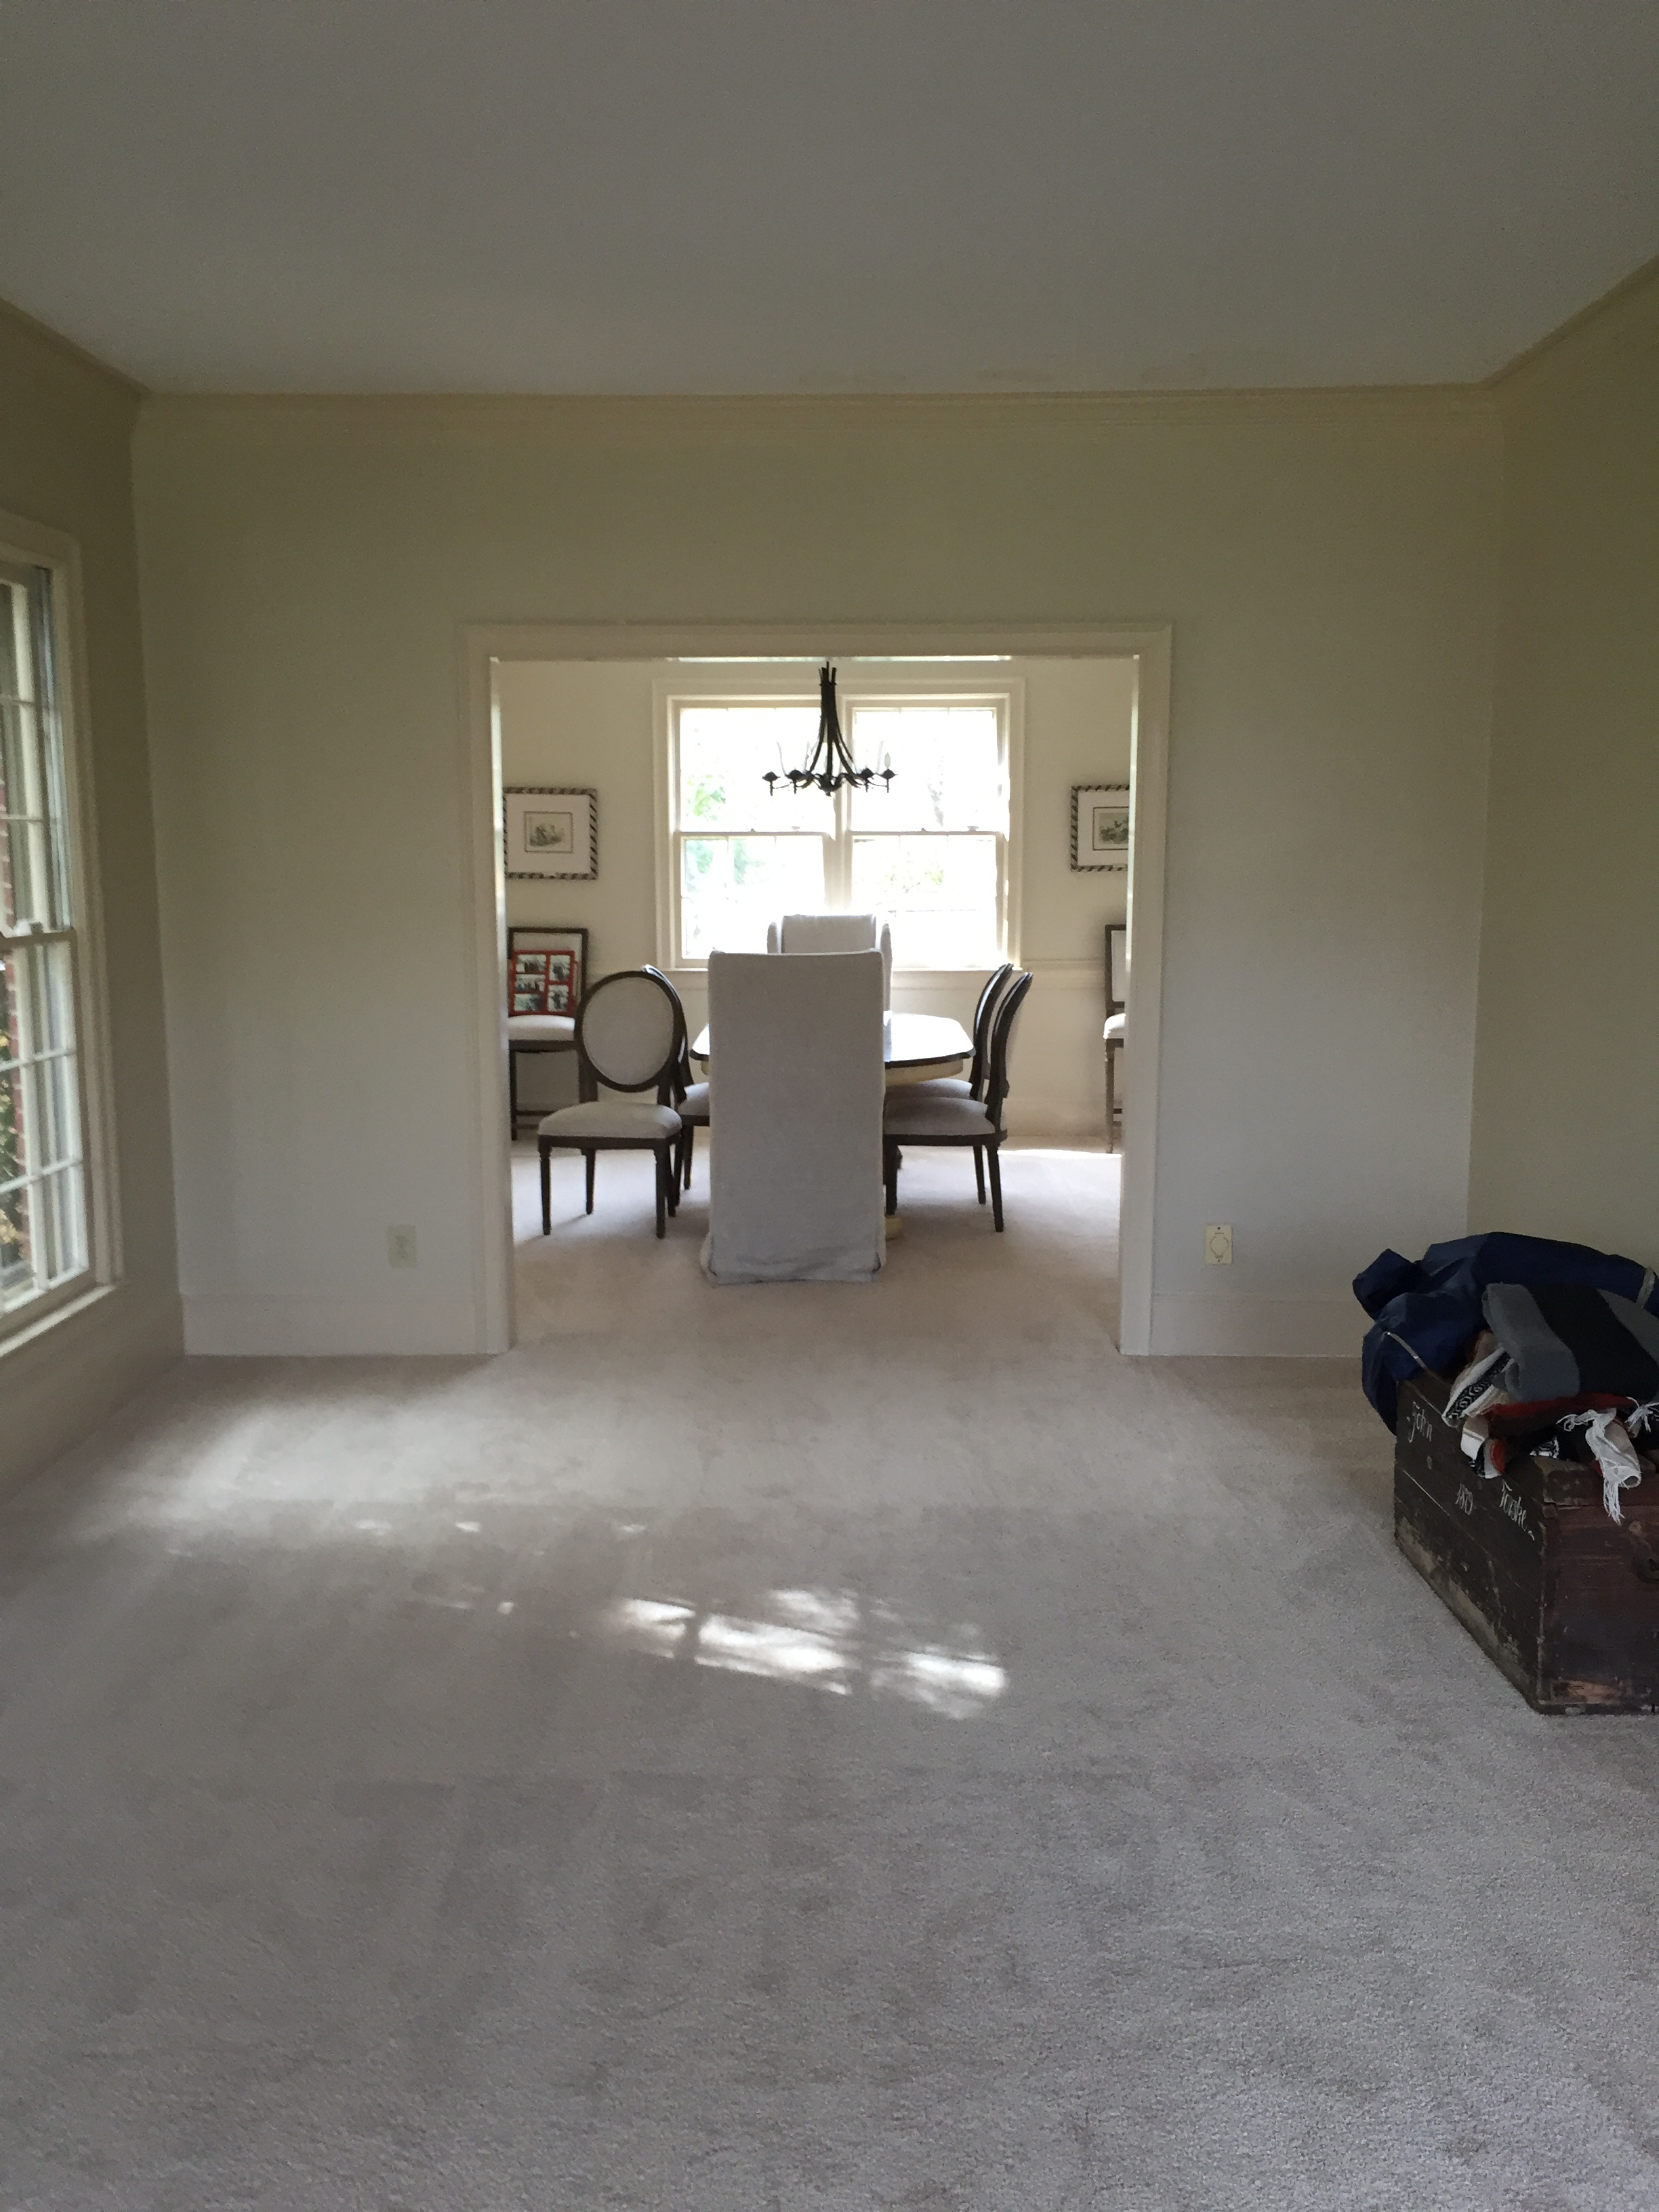 Giant formal living room, which passes into dining room...essentially one long room